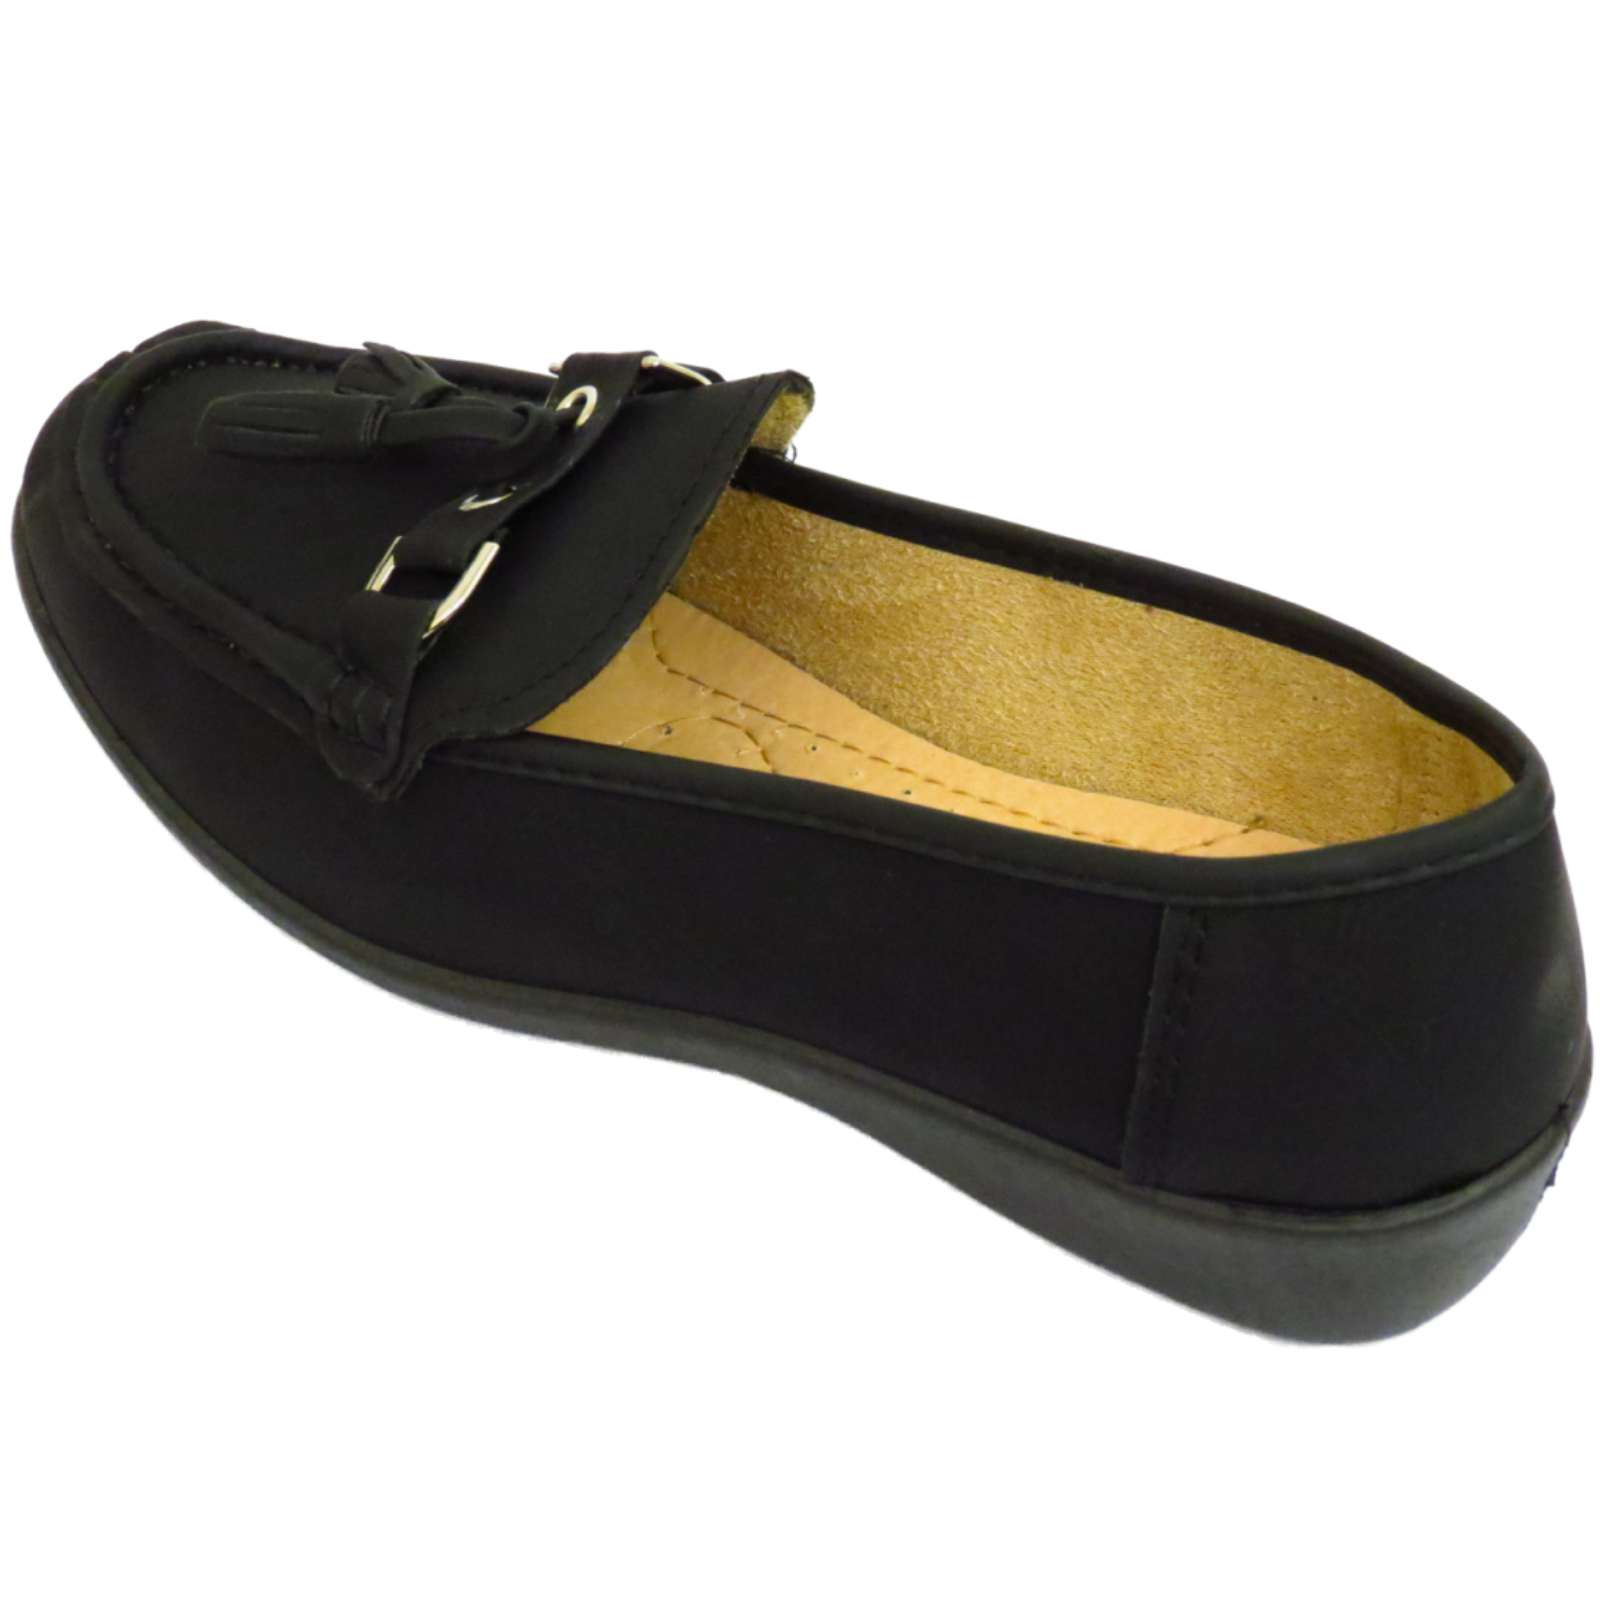 black slip on pumps comfy work moccasin casual